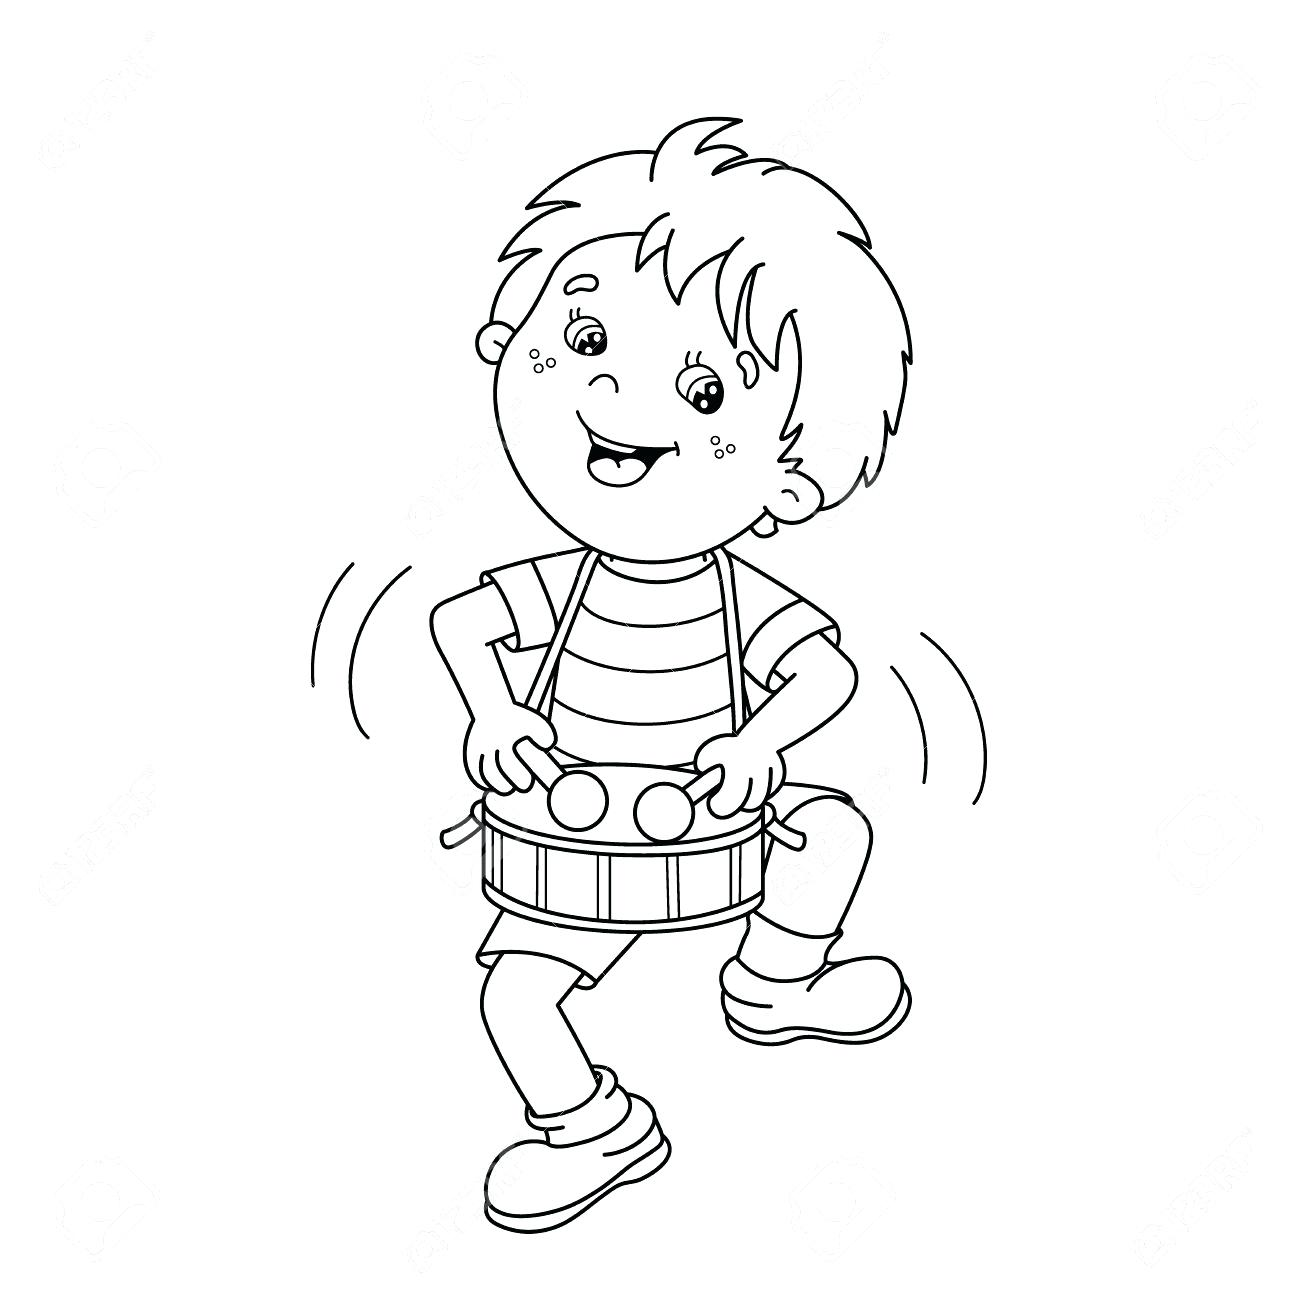 Person Outline Coloring Page Free Coloring Pages Download | Xsibe ...